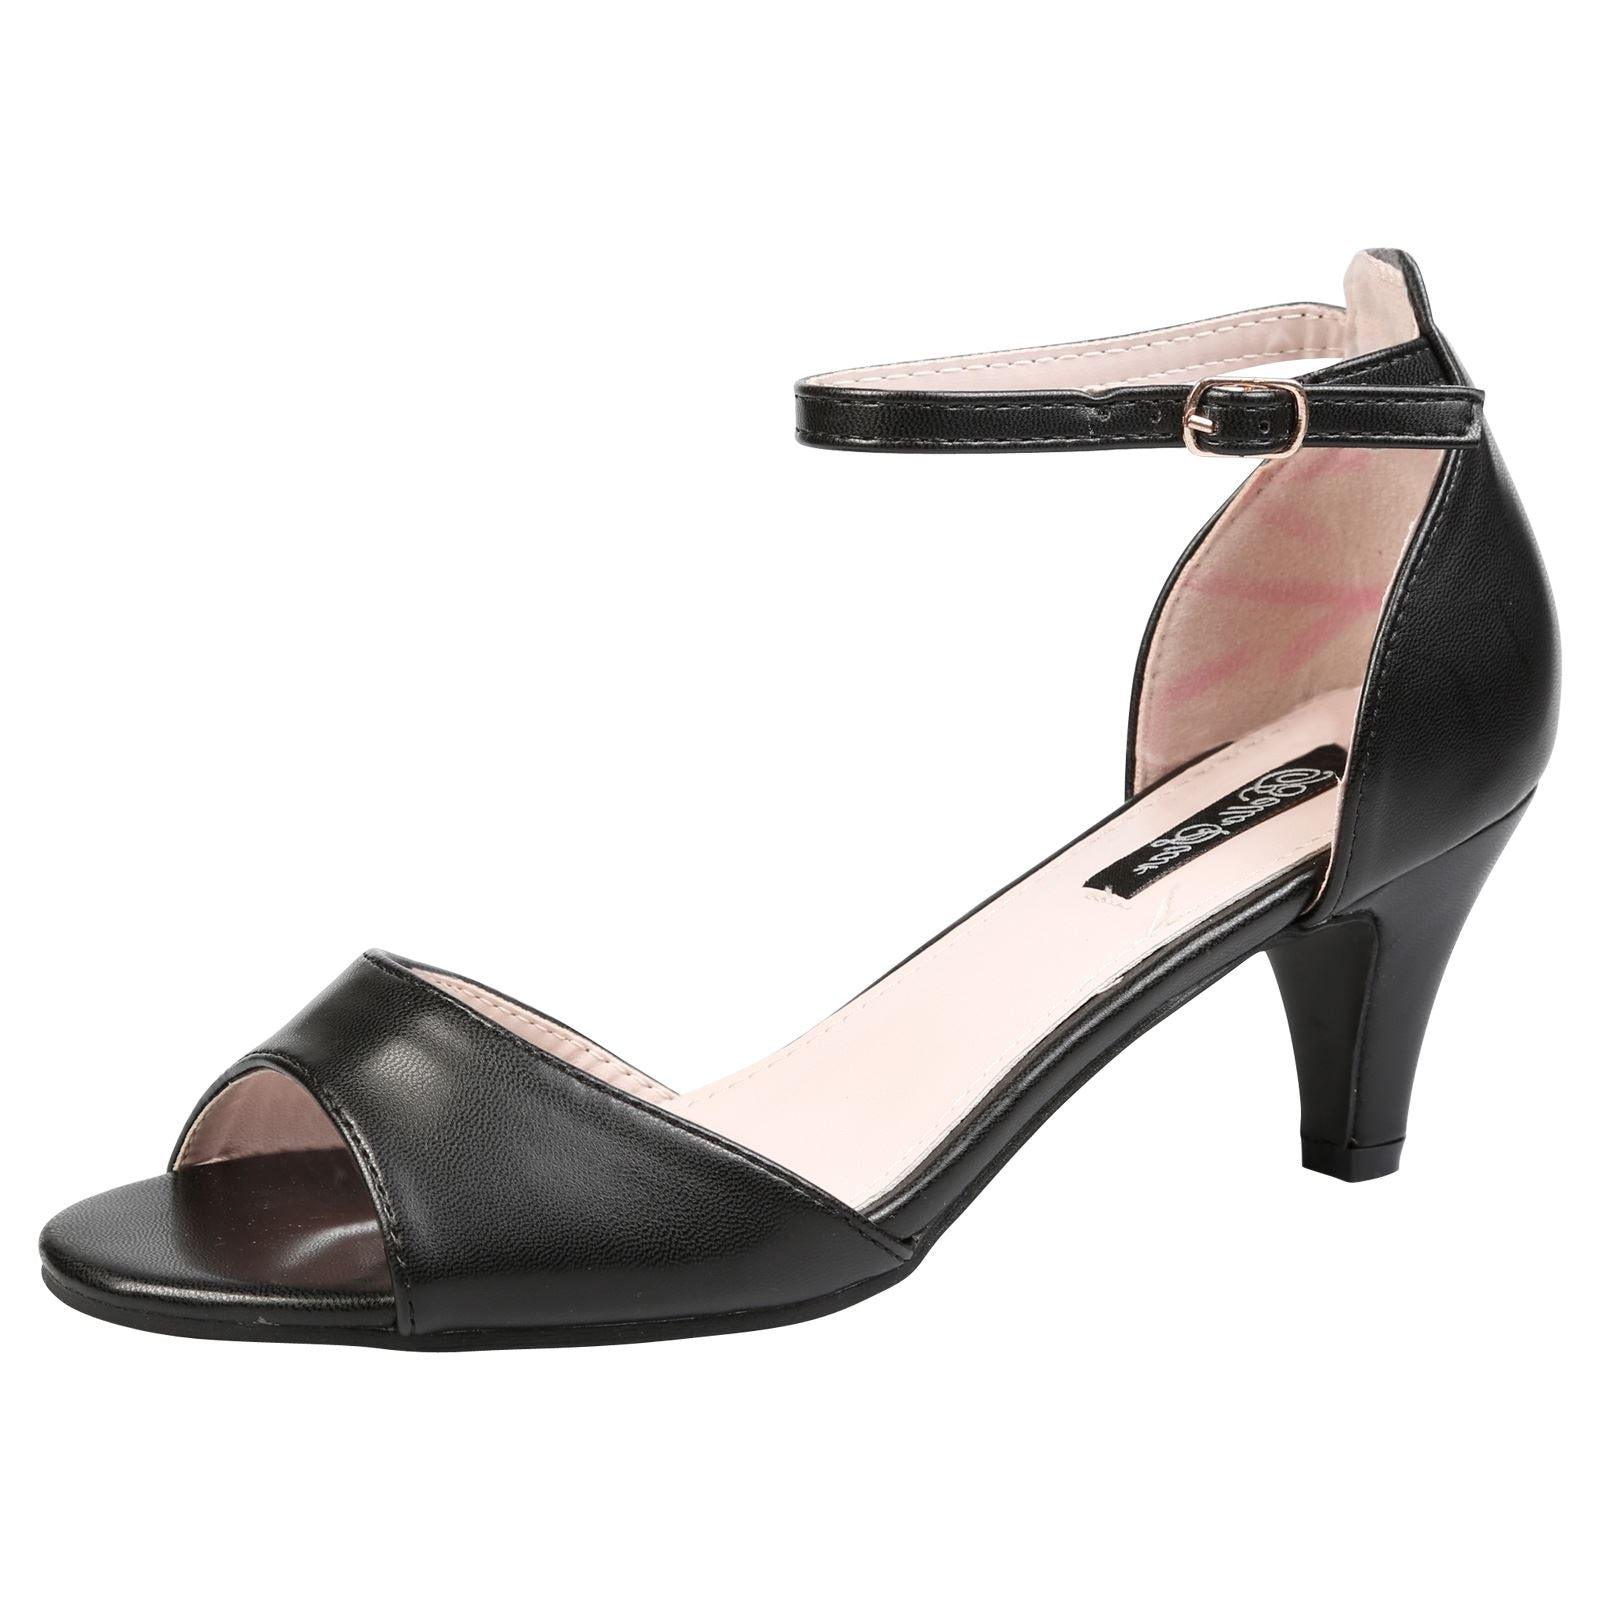 Laurie Low Heel Ankle Strap Sandals in Black Faux Leather